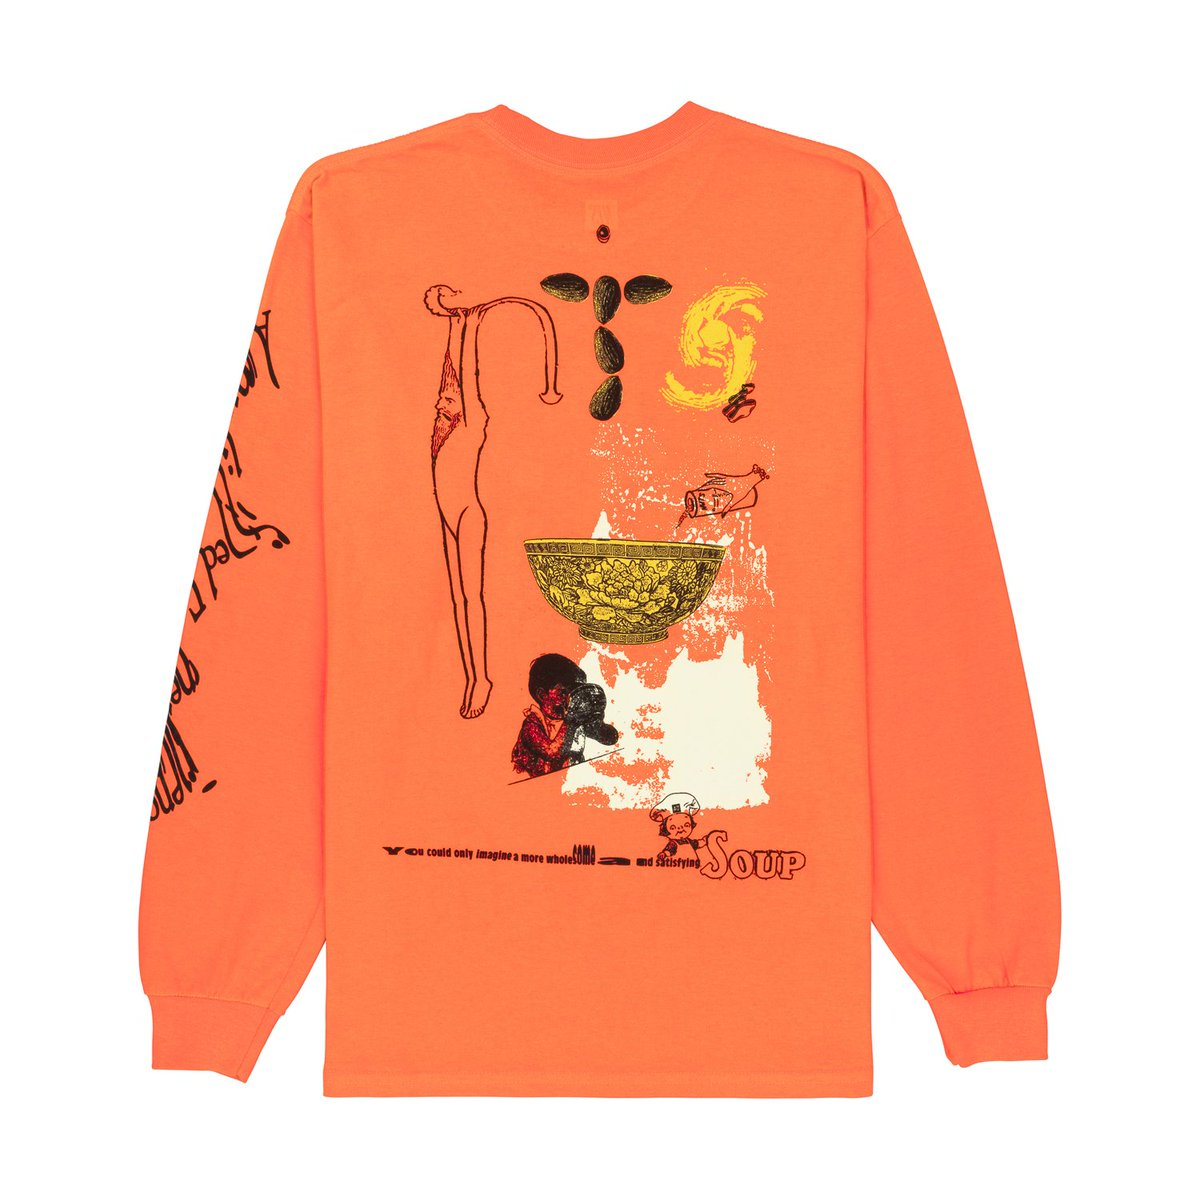 Nts Radio On Twitter Orange L S Soup Doodle Tee Is Back In Stock Thanks To Por Demand Get Yours Https T Co Aqt9hgwz